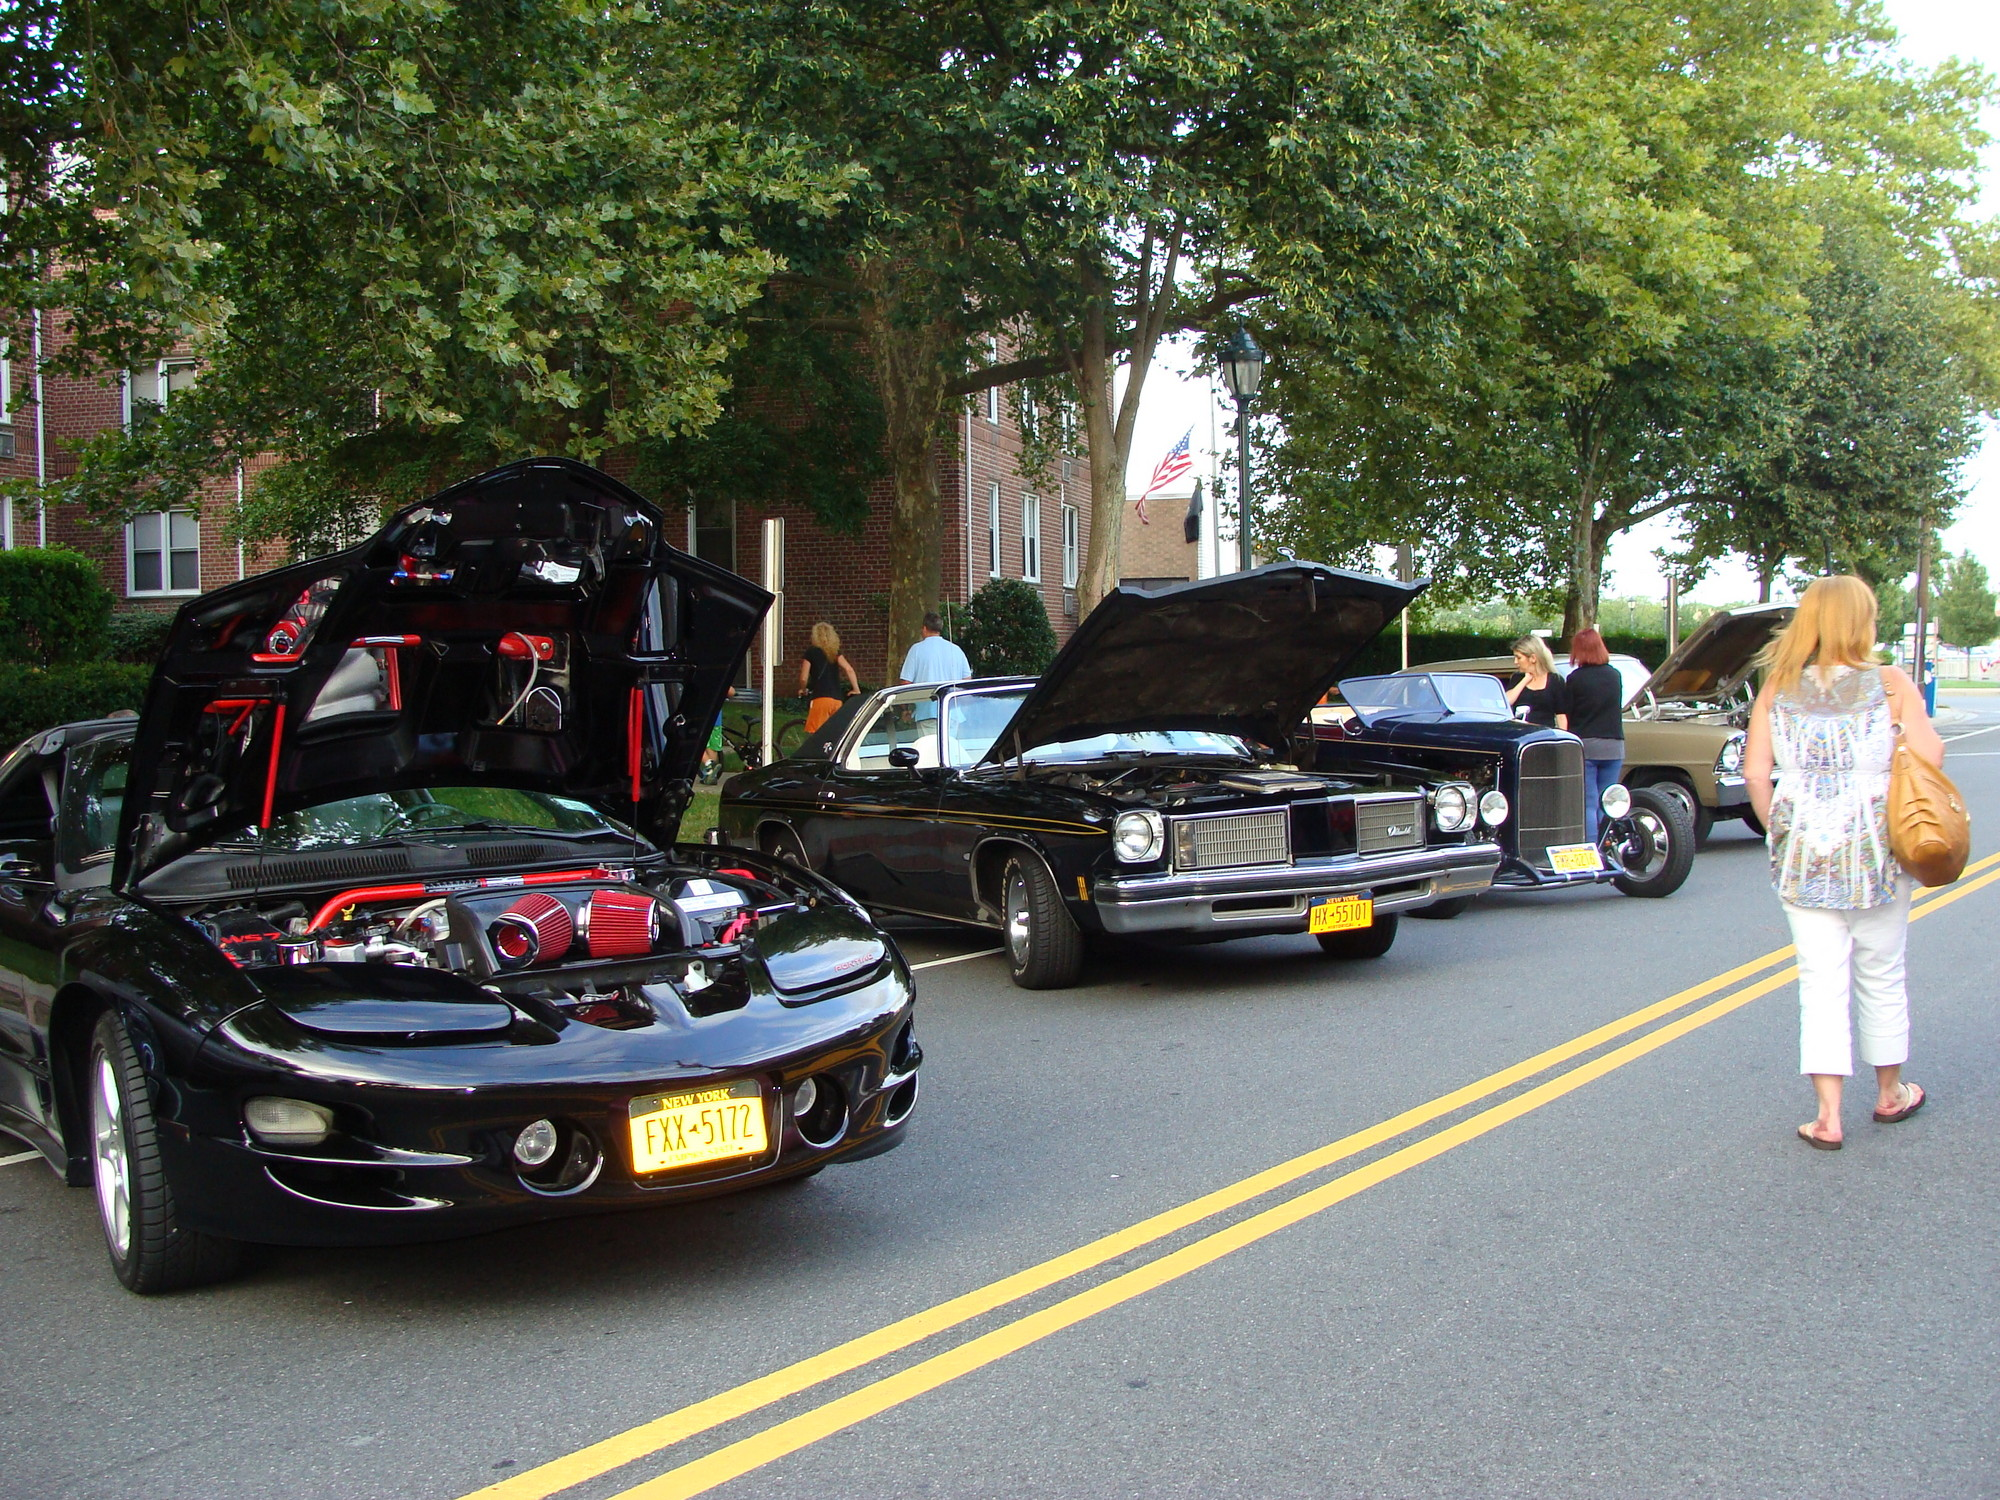 Last year's car show drew residents from East Rockaway and neighboring towns to Main Street on summer Monday nights.